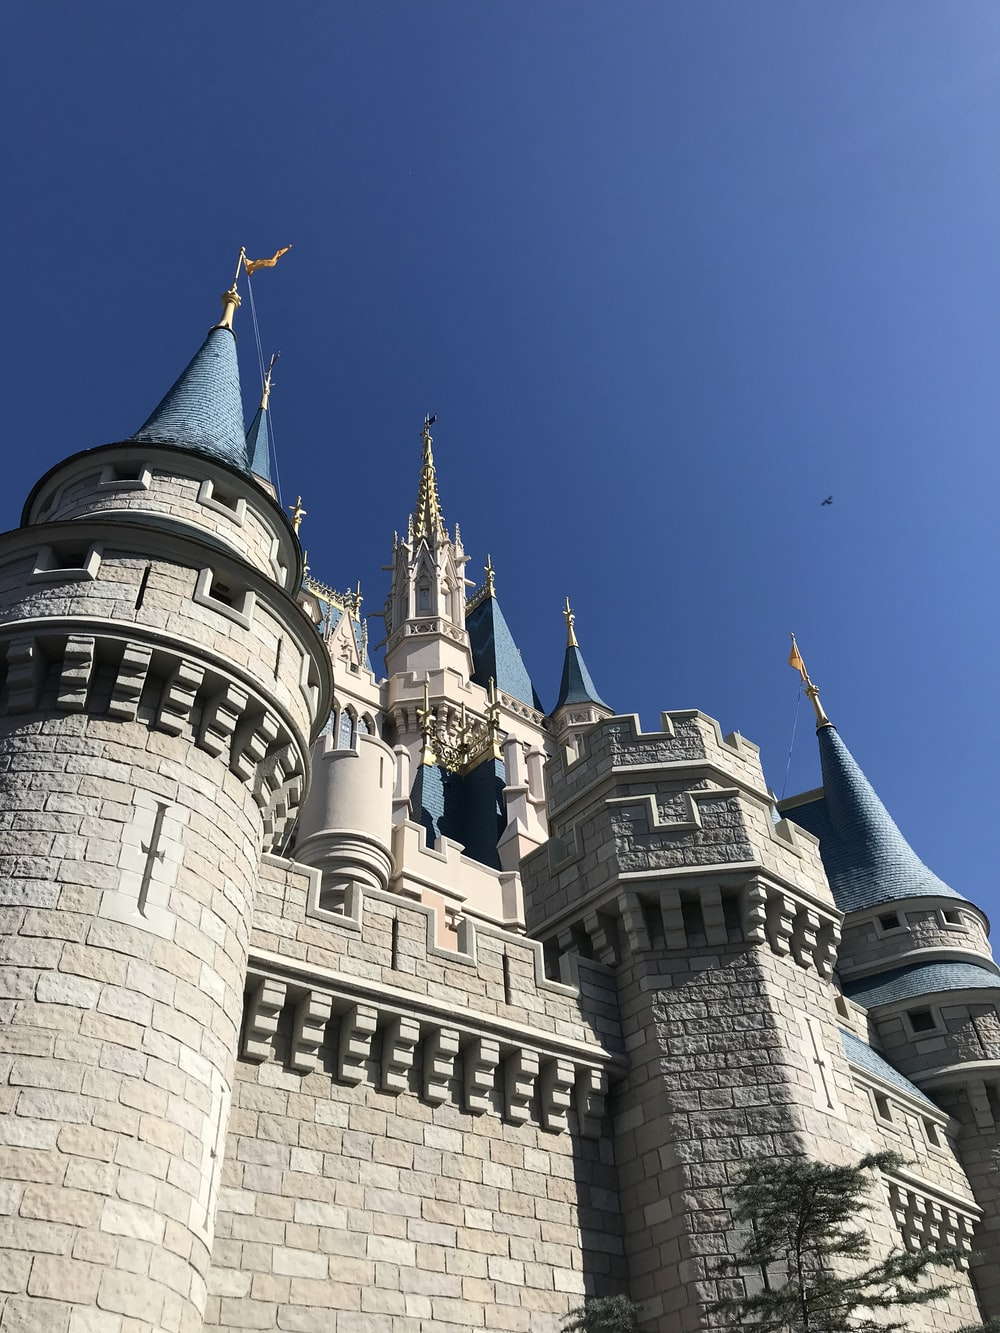 architectural photography of gray and blue castle